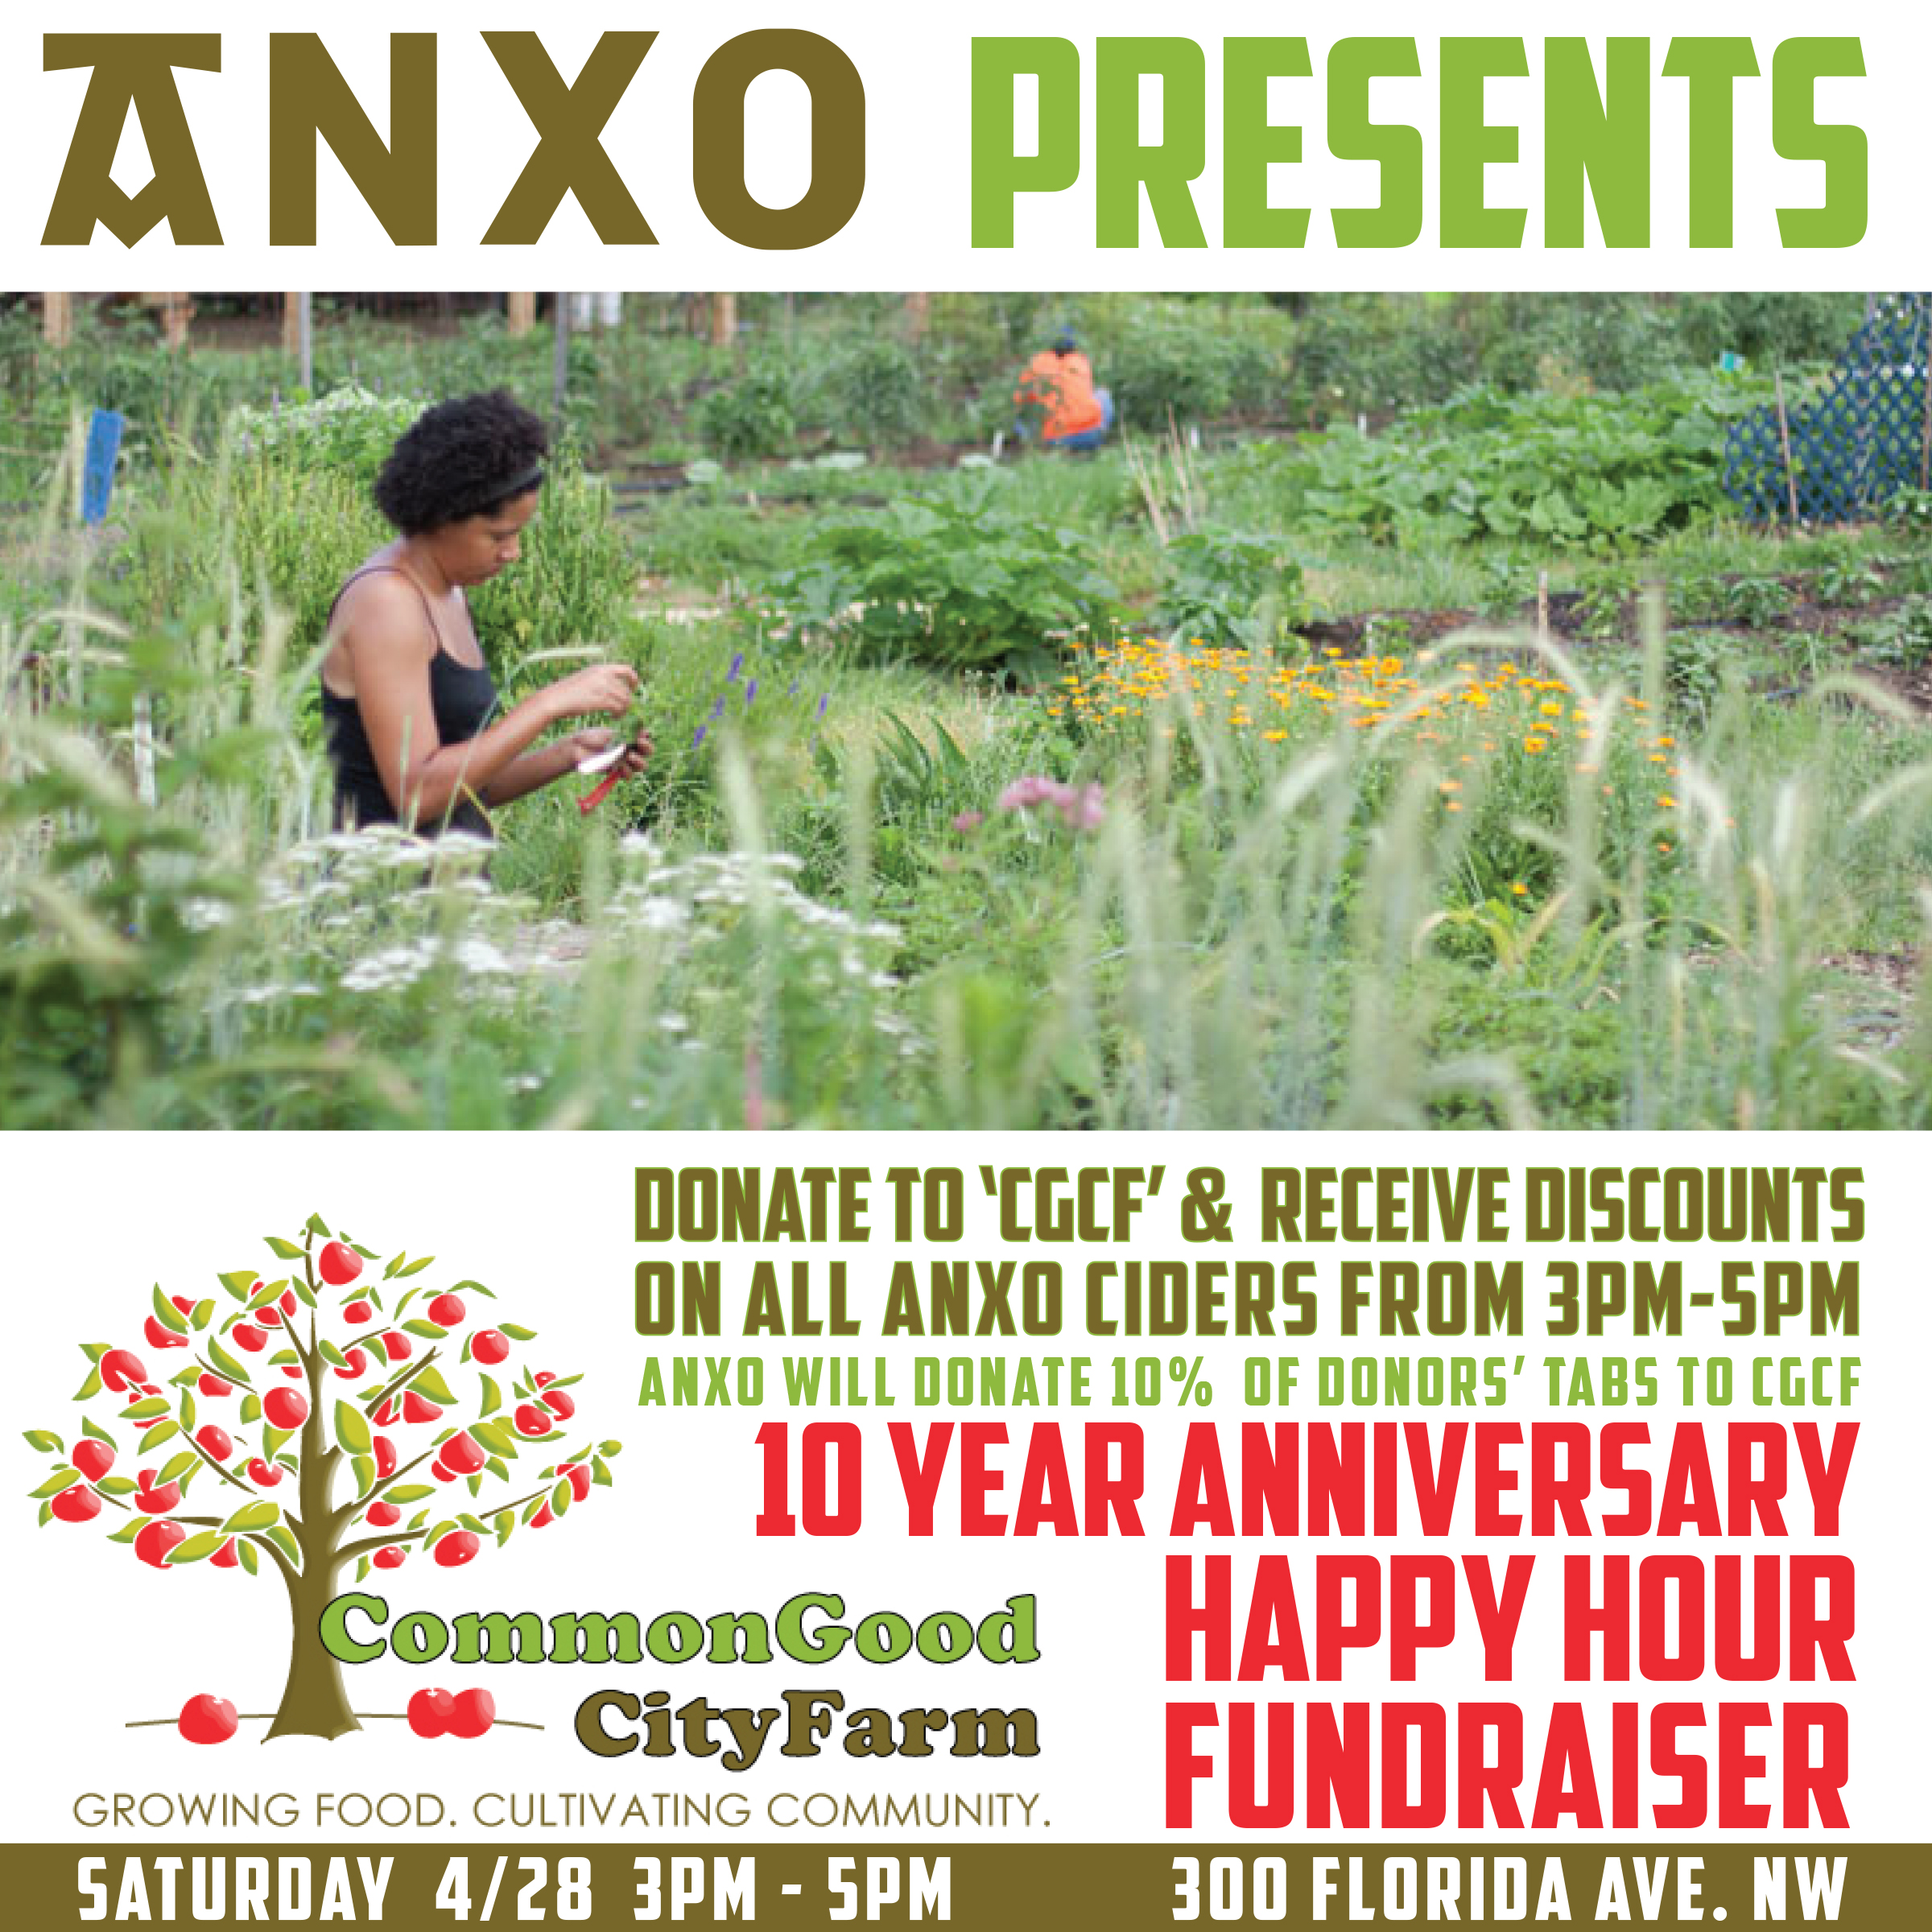 From 3-5 this Saturday all ANXO ciders are 10% off with a donation to Common Good City Farm. We will also donate 10% of the sales of donors' tabs to CGCF.